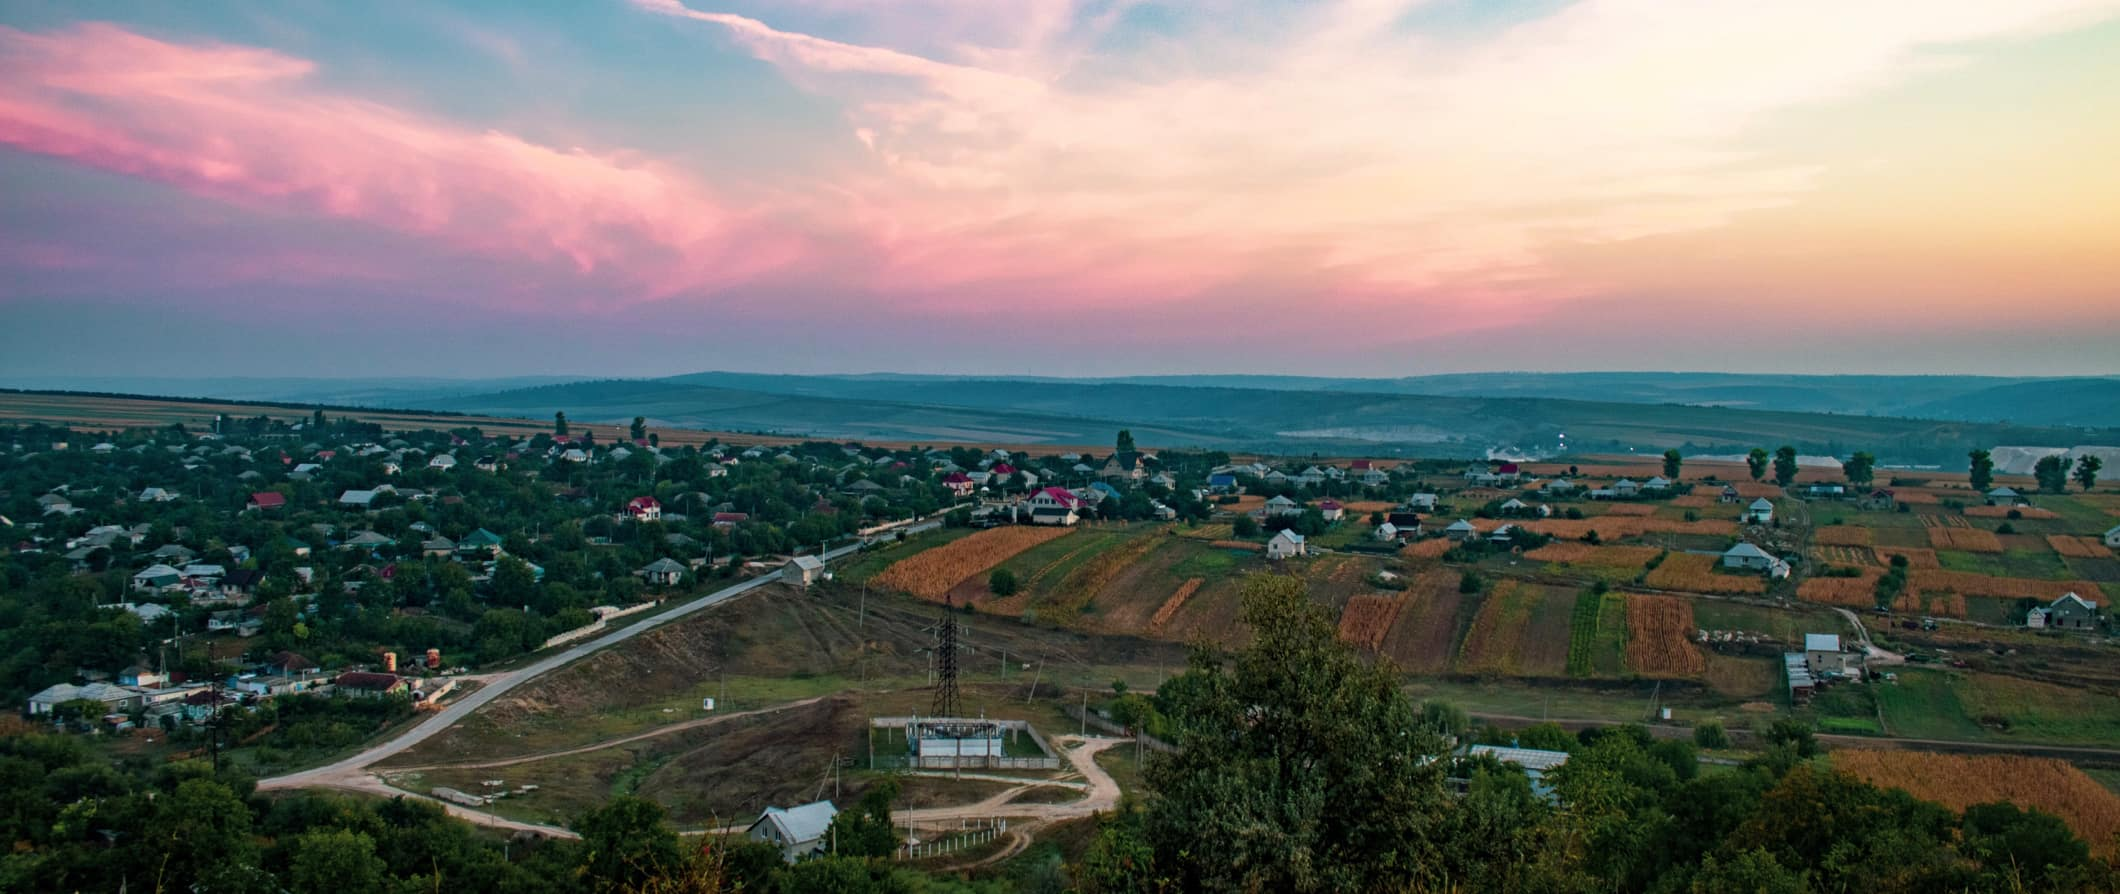 The wide open spaces of Moldova during the sunset